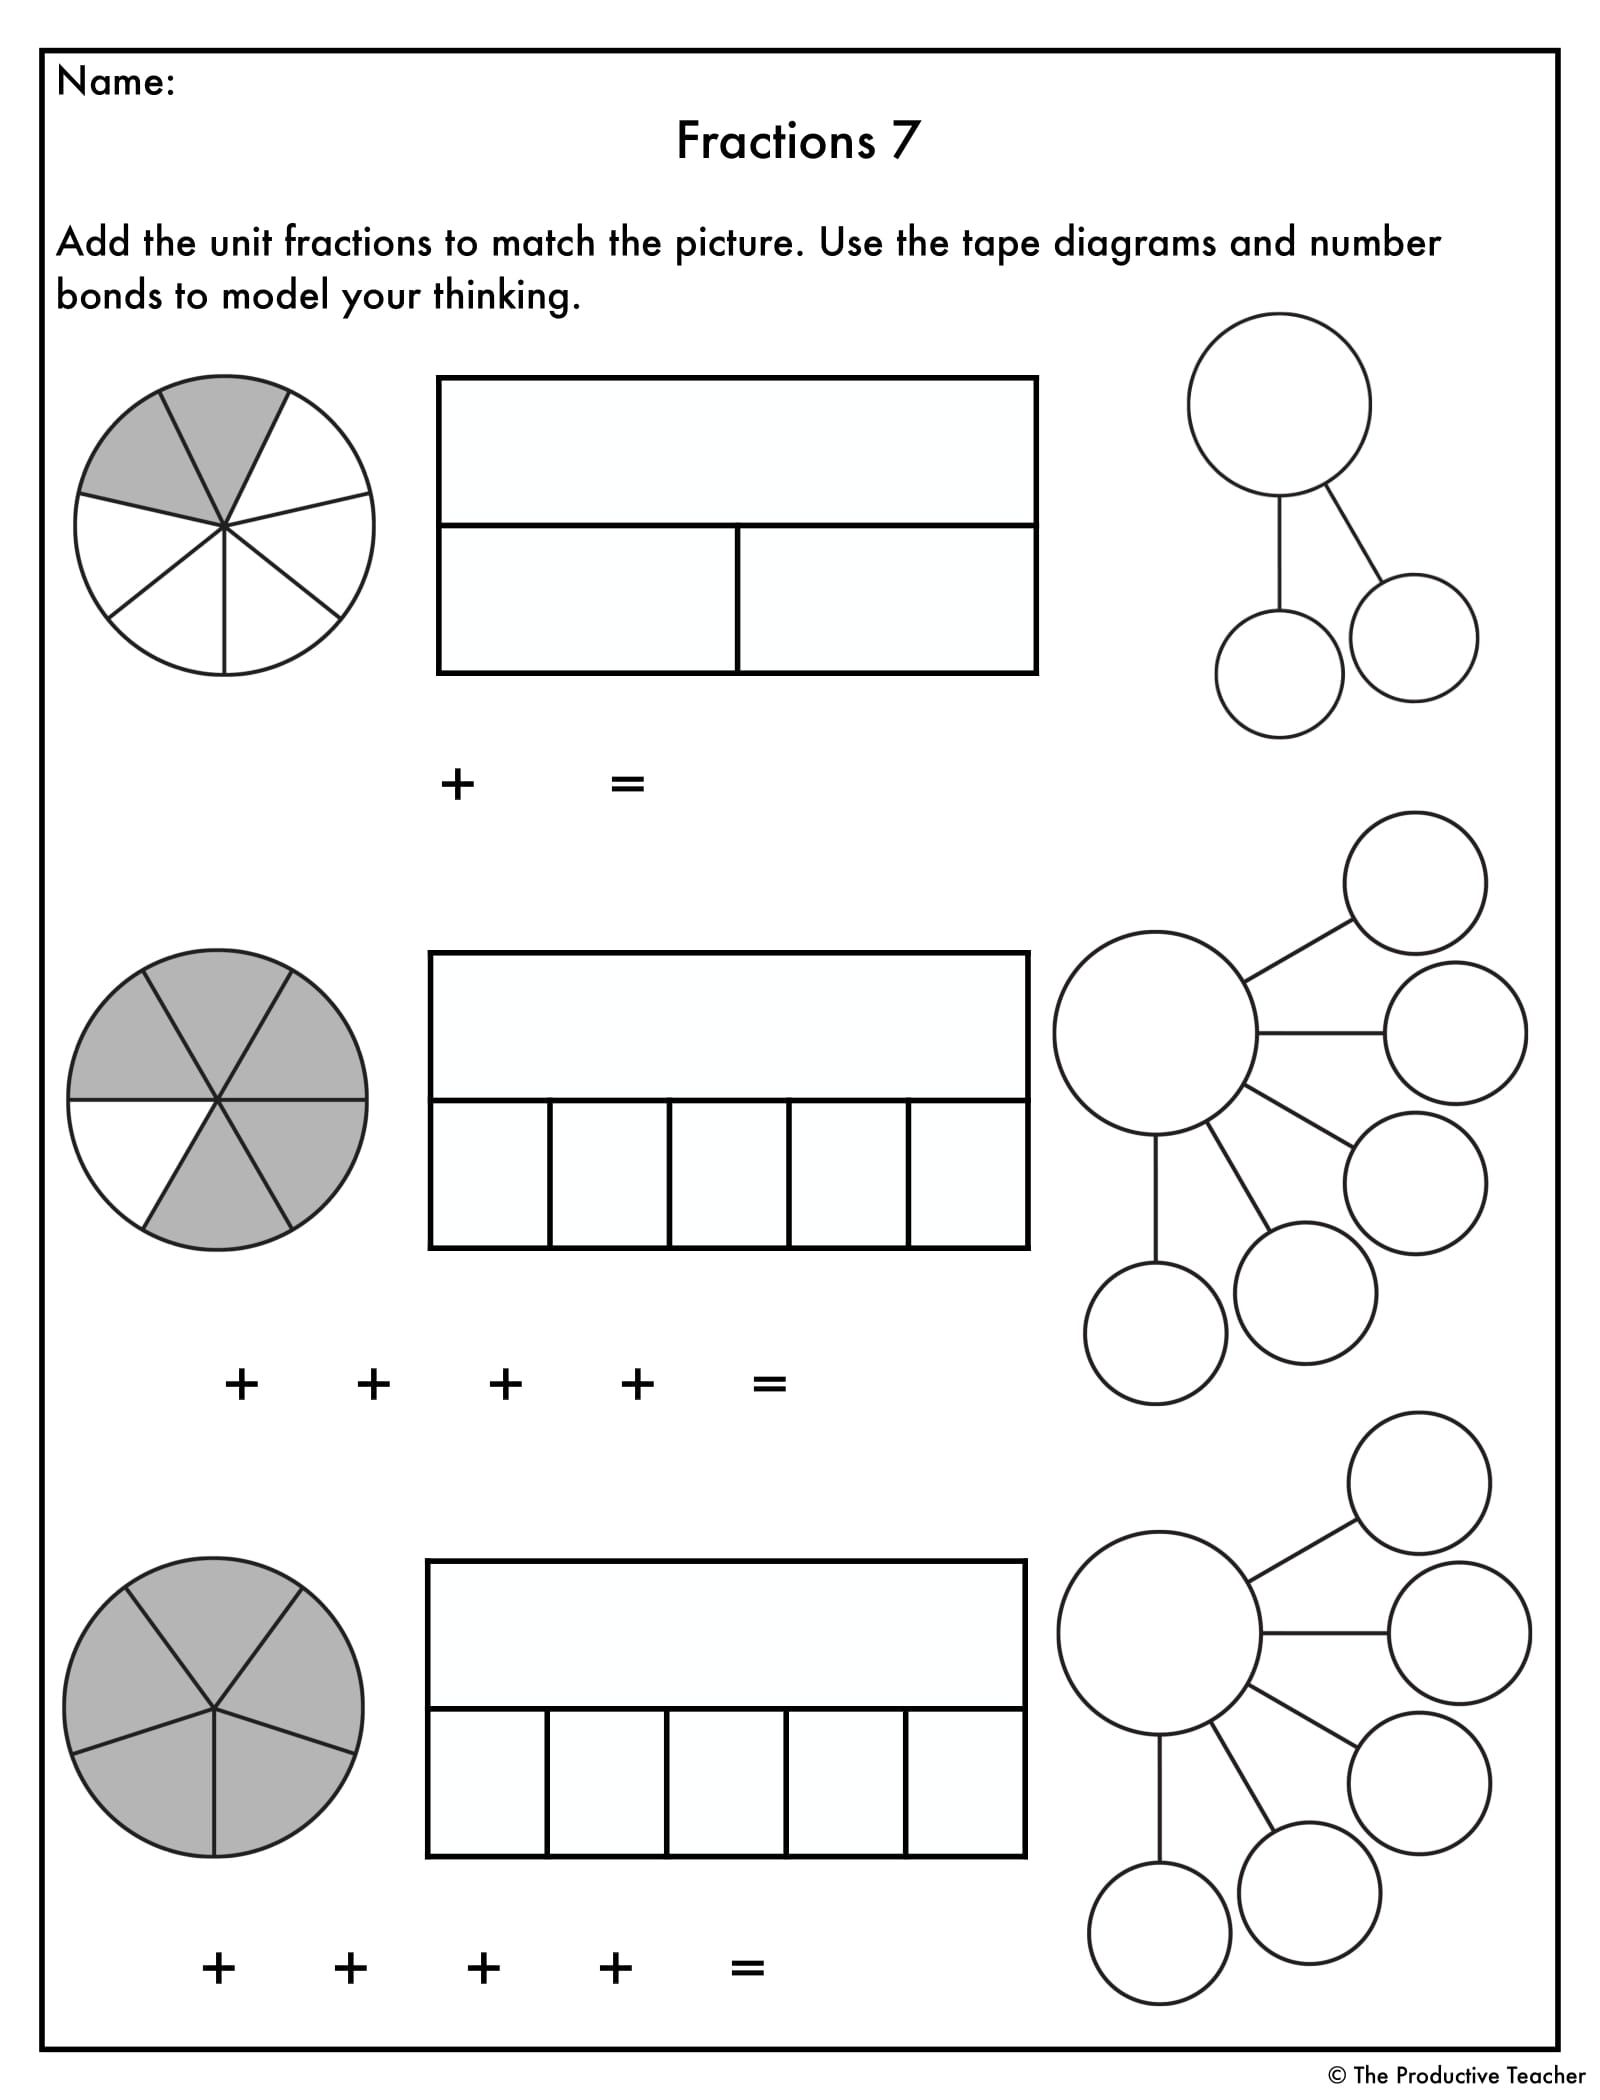 Do You Need Some Worksheets To Support Your Fractions